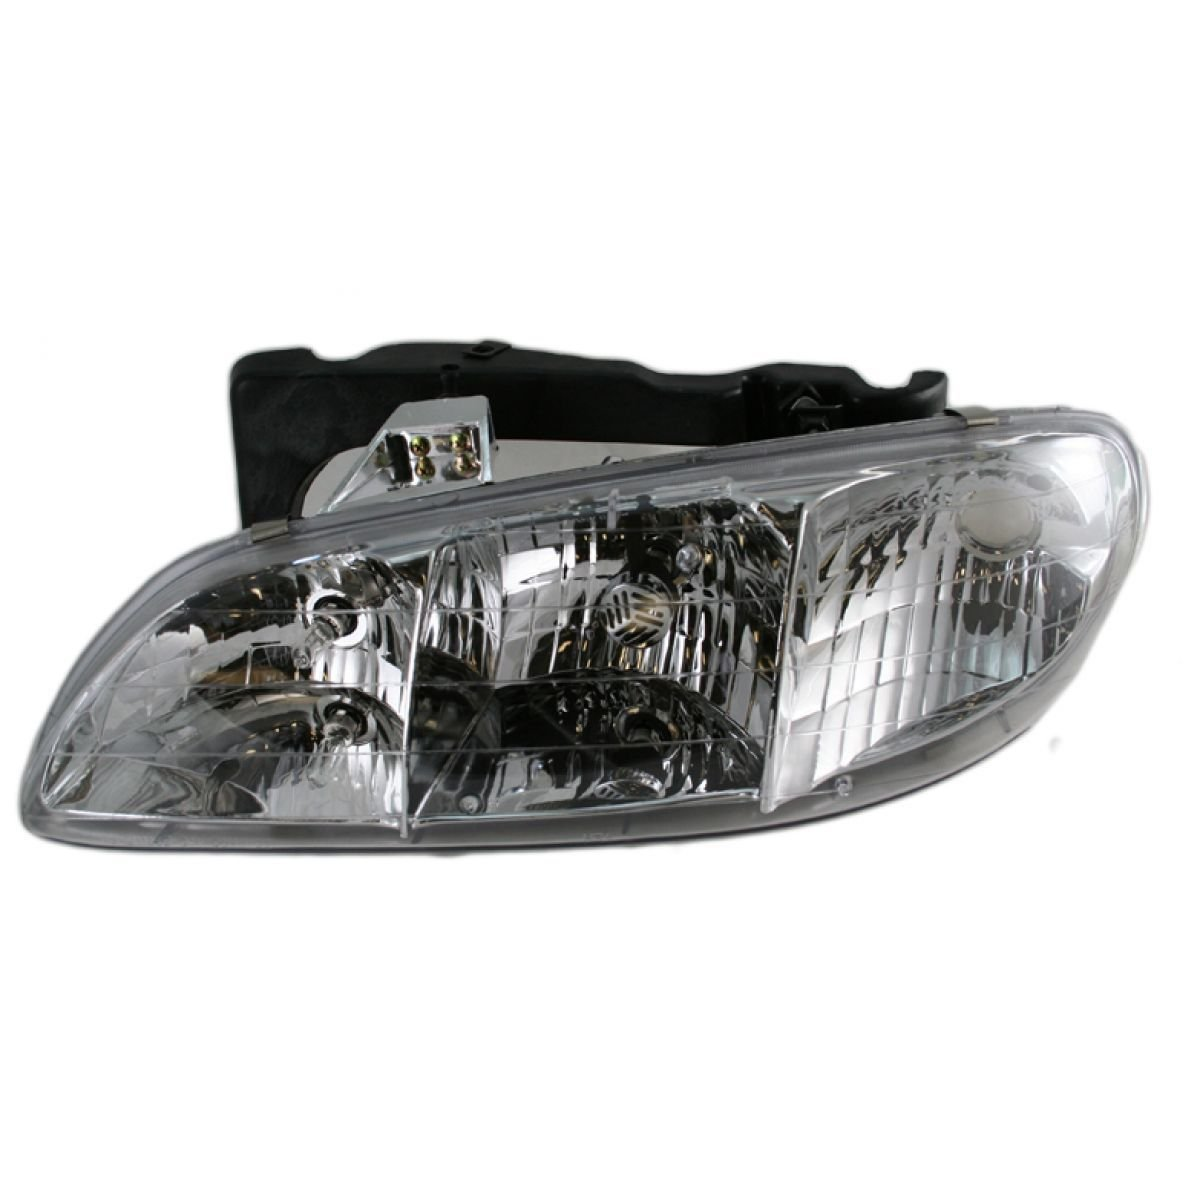 Winnebago Journey 2004-2007 Left (Driver) Replacement Front Headlight with Bulbs